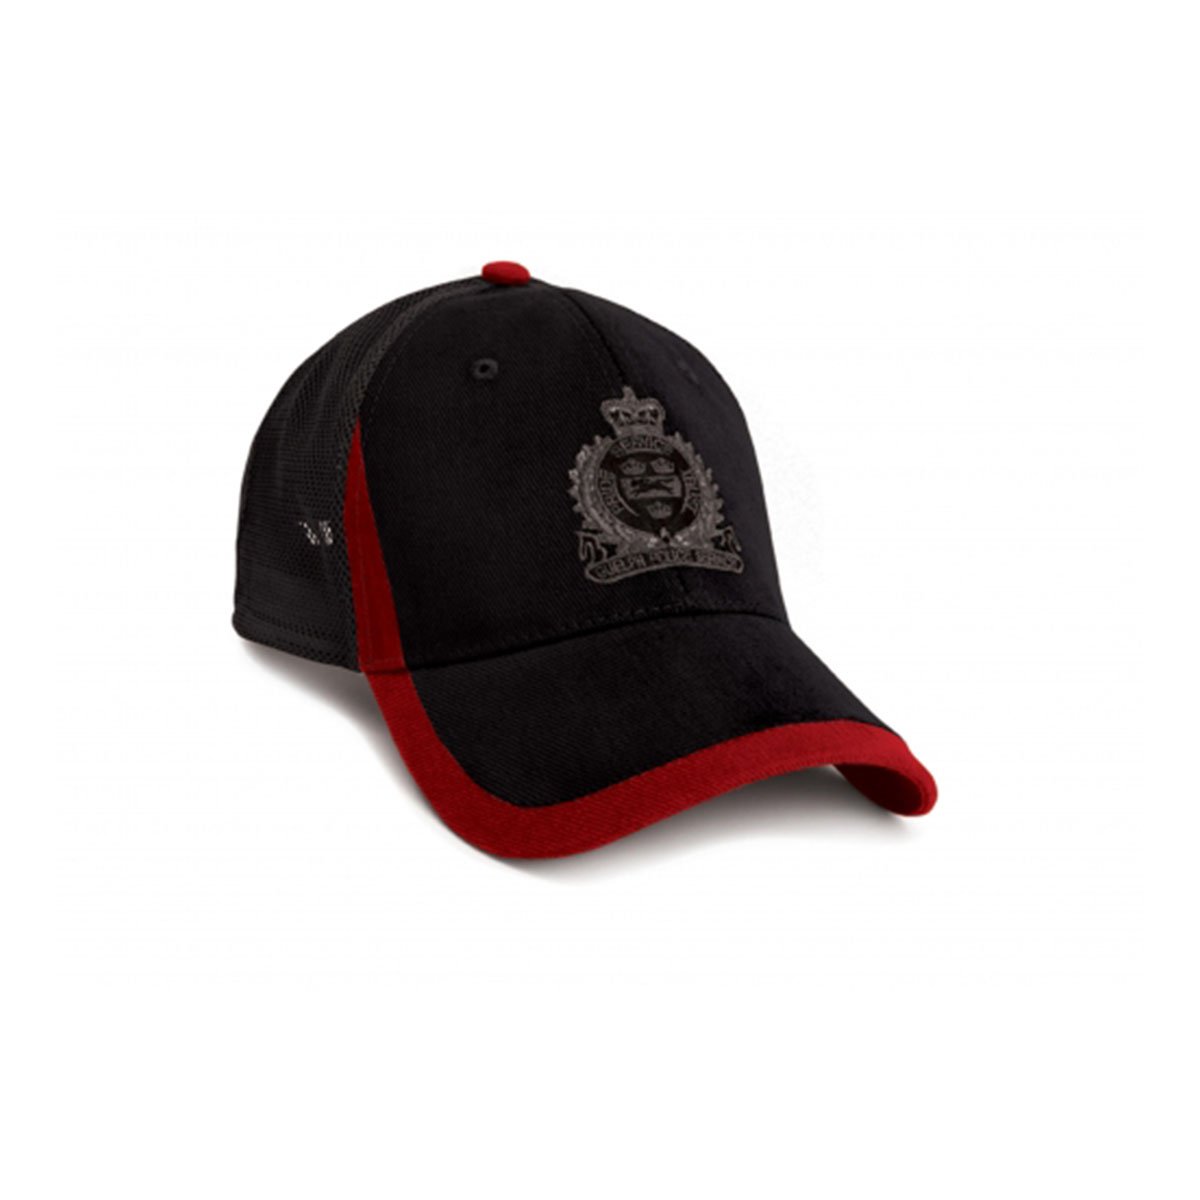 Trix Cap-Black / Red